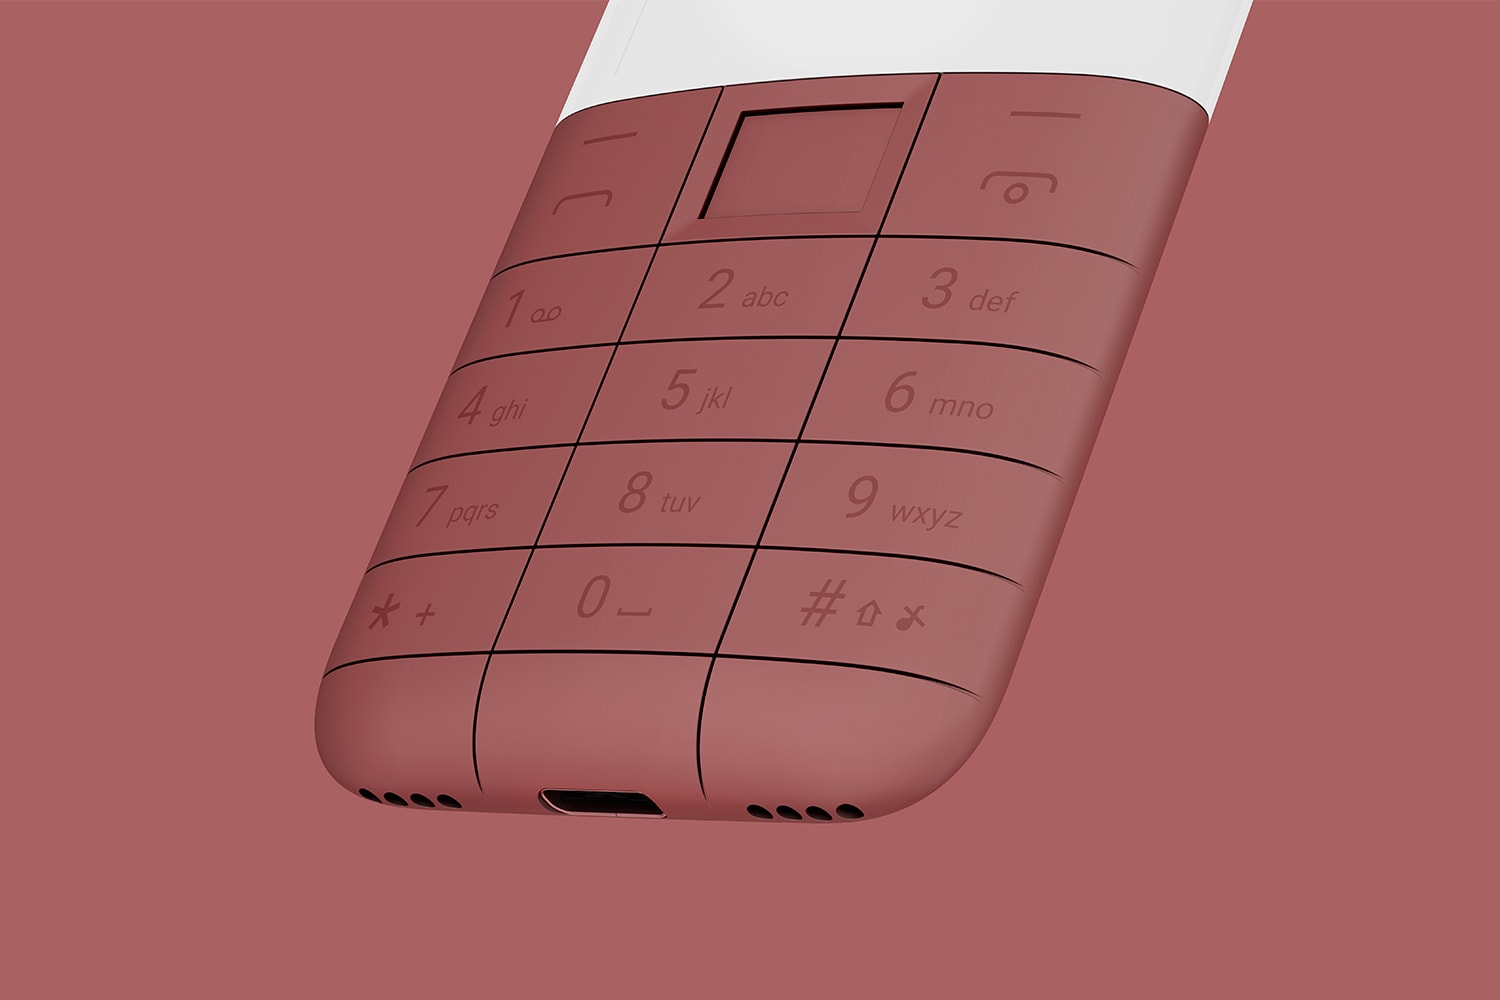 Perspective view of a section of the Offline Phone, Red. The image shows the number buttons, navigation buttons, charging port and speaker.